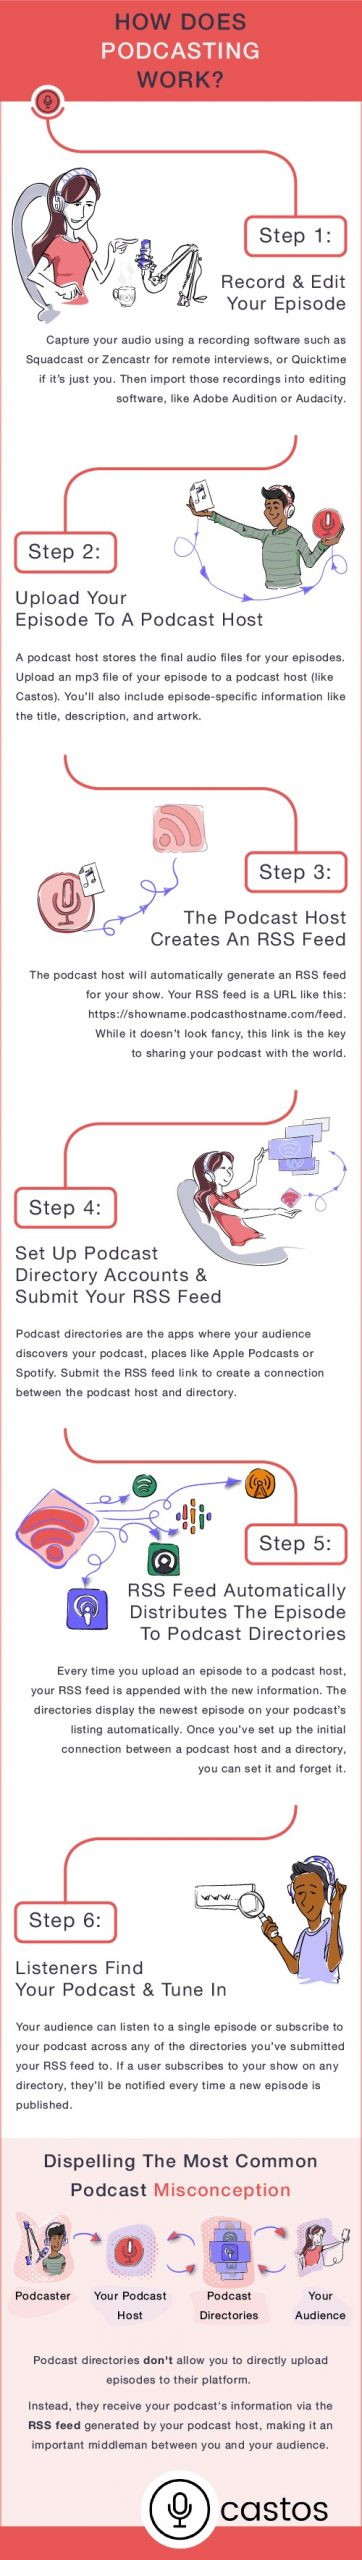 How does podcasting work